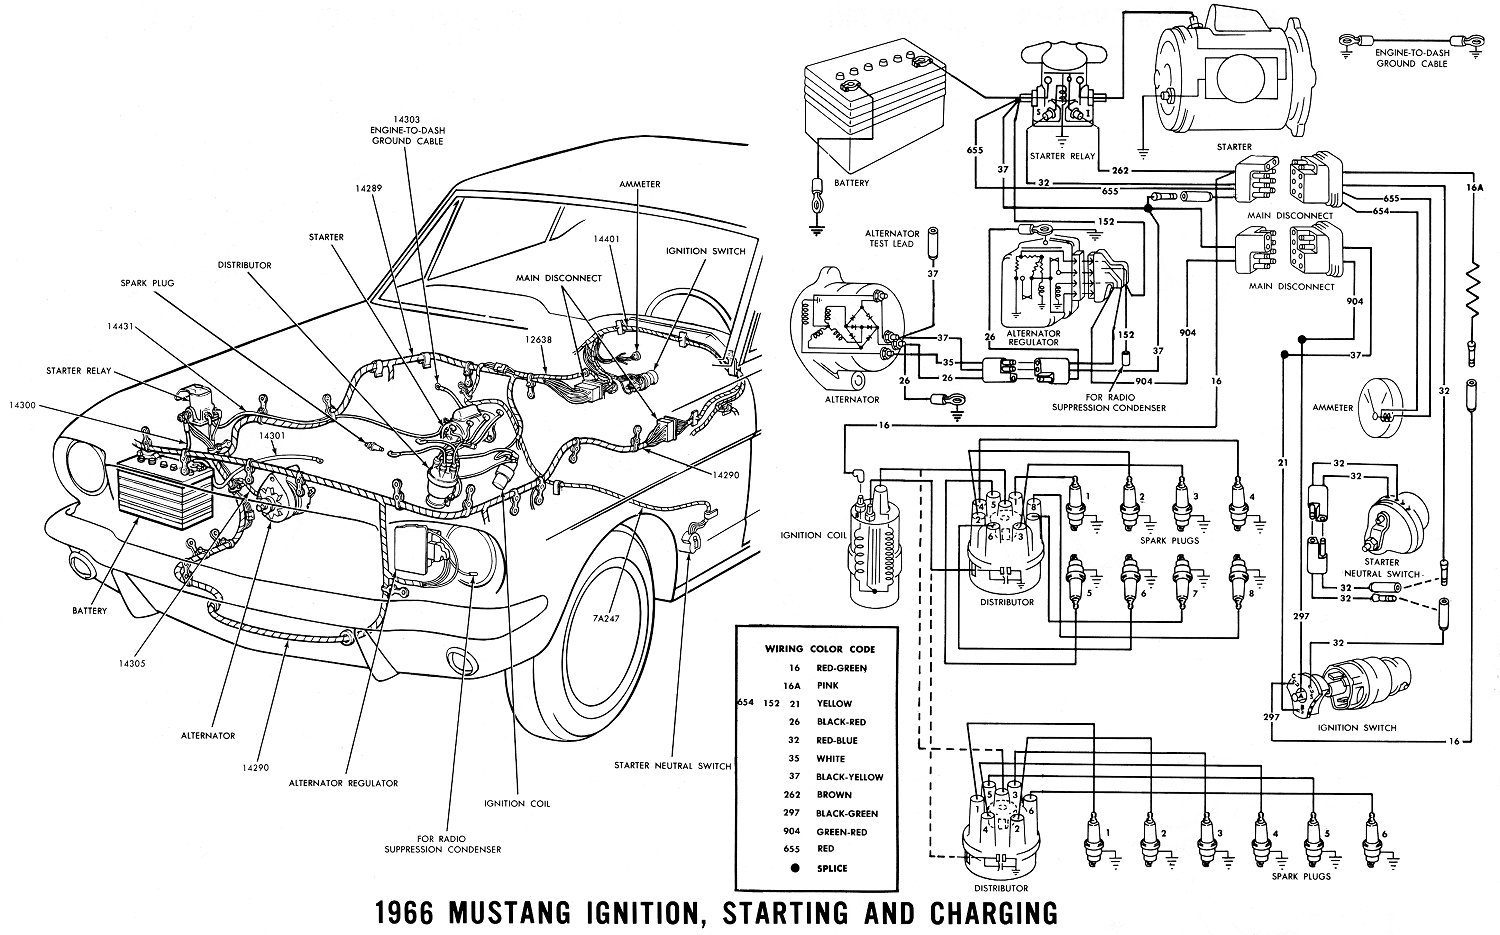 free auto wiring diagram 1966 mustang ignition wiring diagram 66 ford mustang wiring diagram 1967 ford [ 1500 x 935 Pixel ]